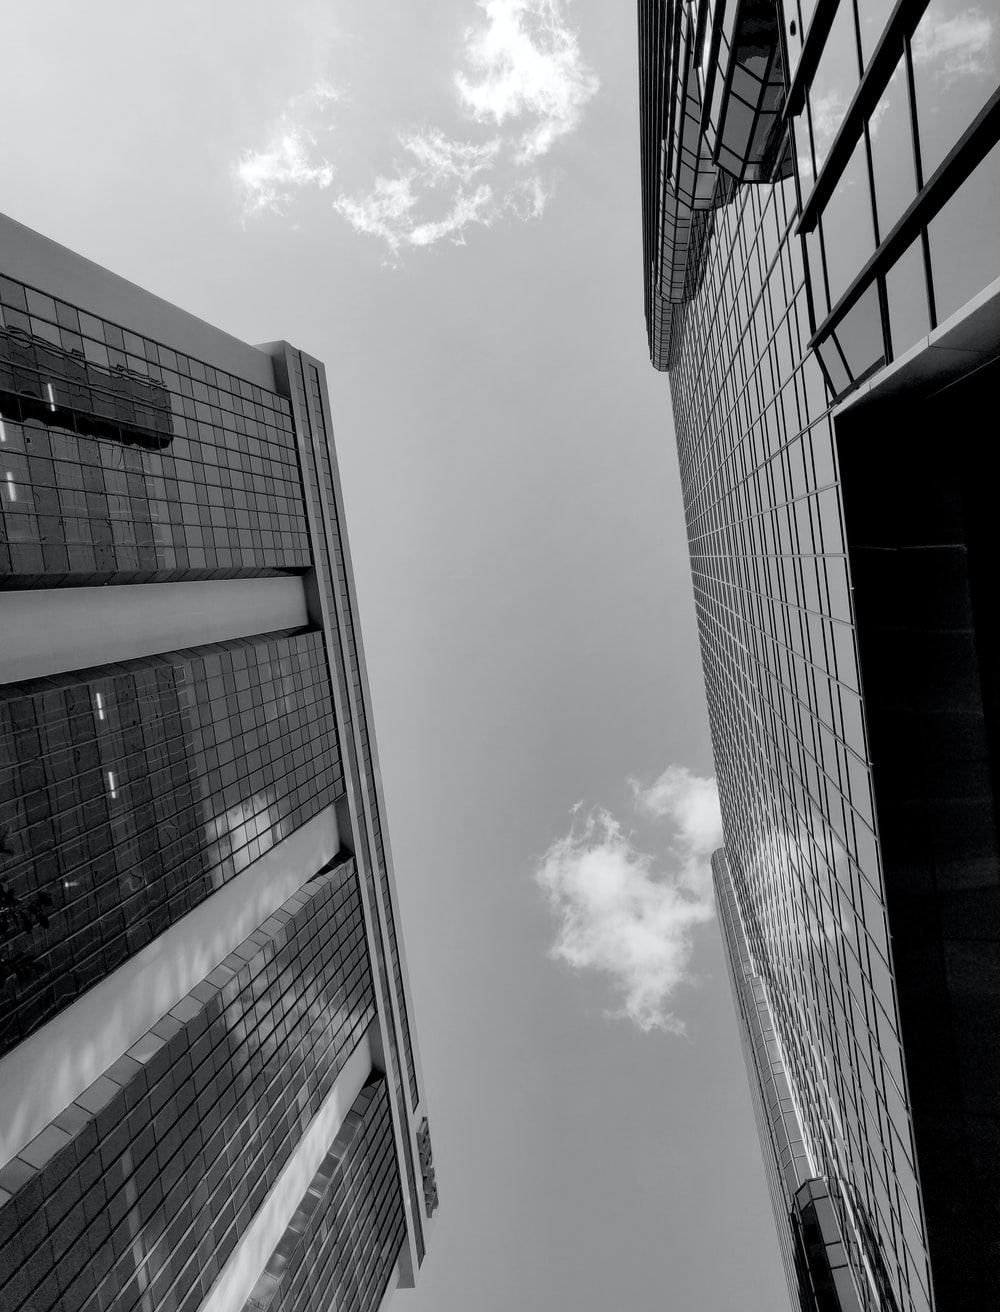 grayscape photo of buildings during daytime